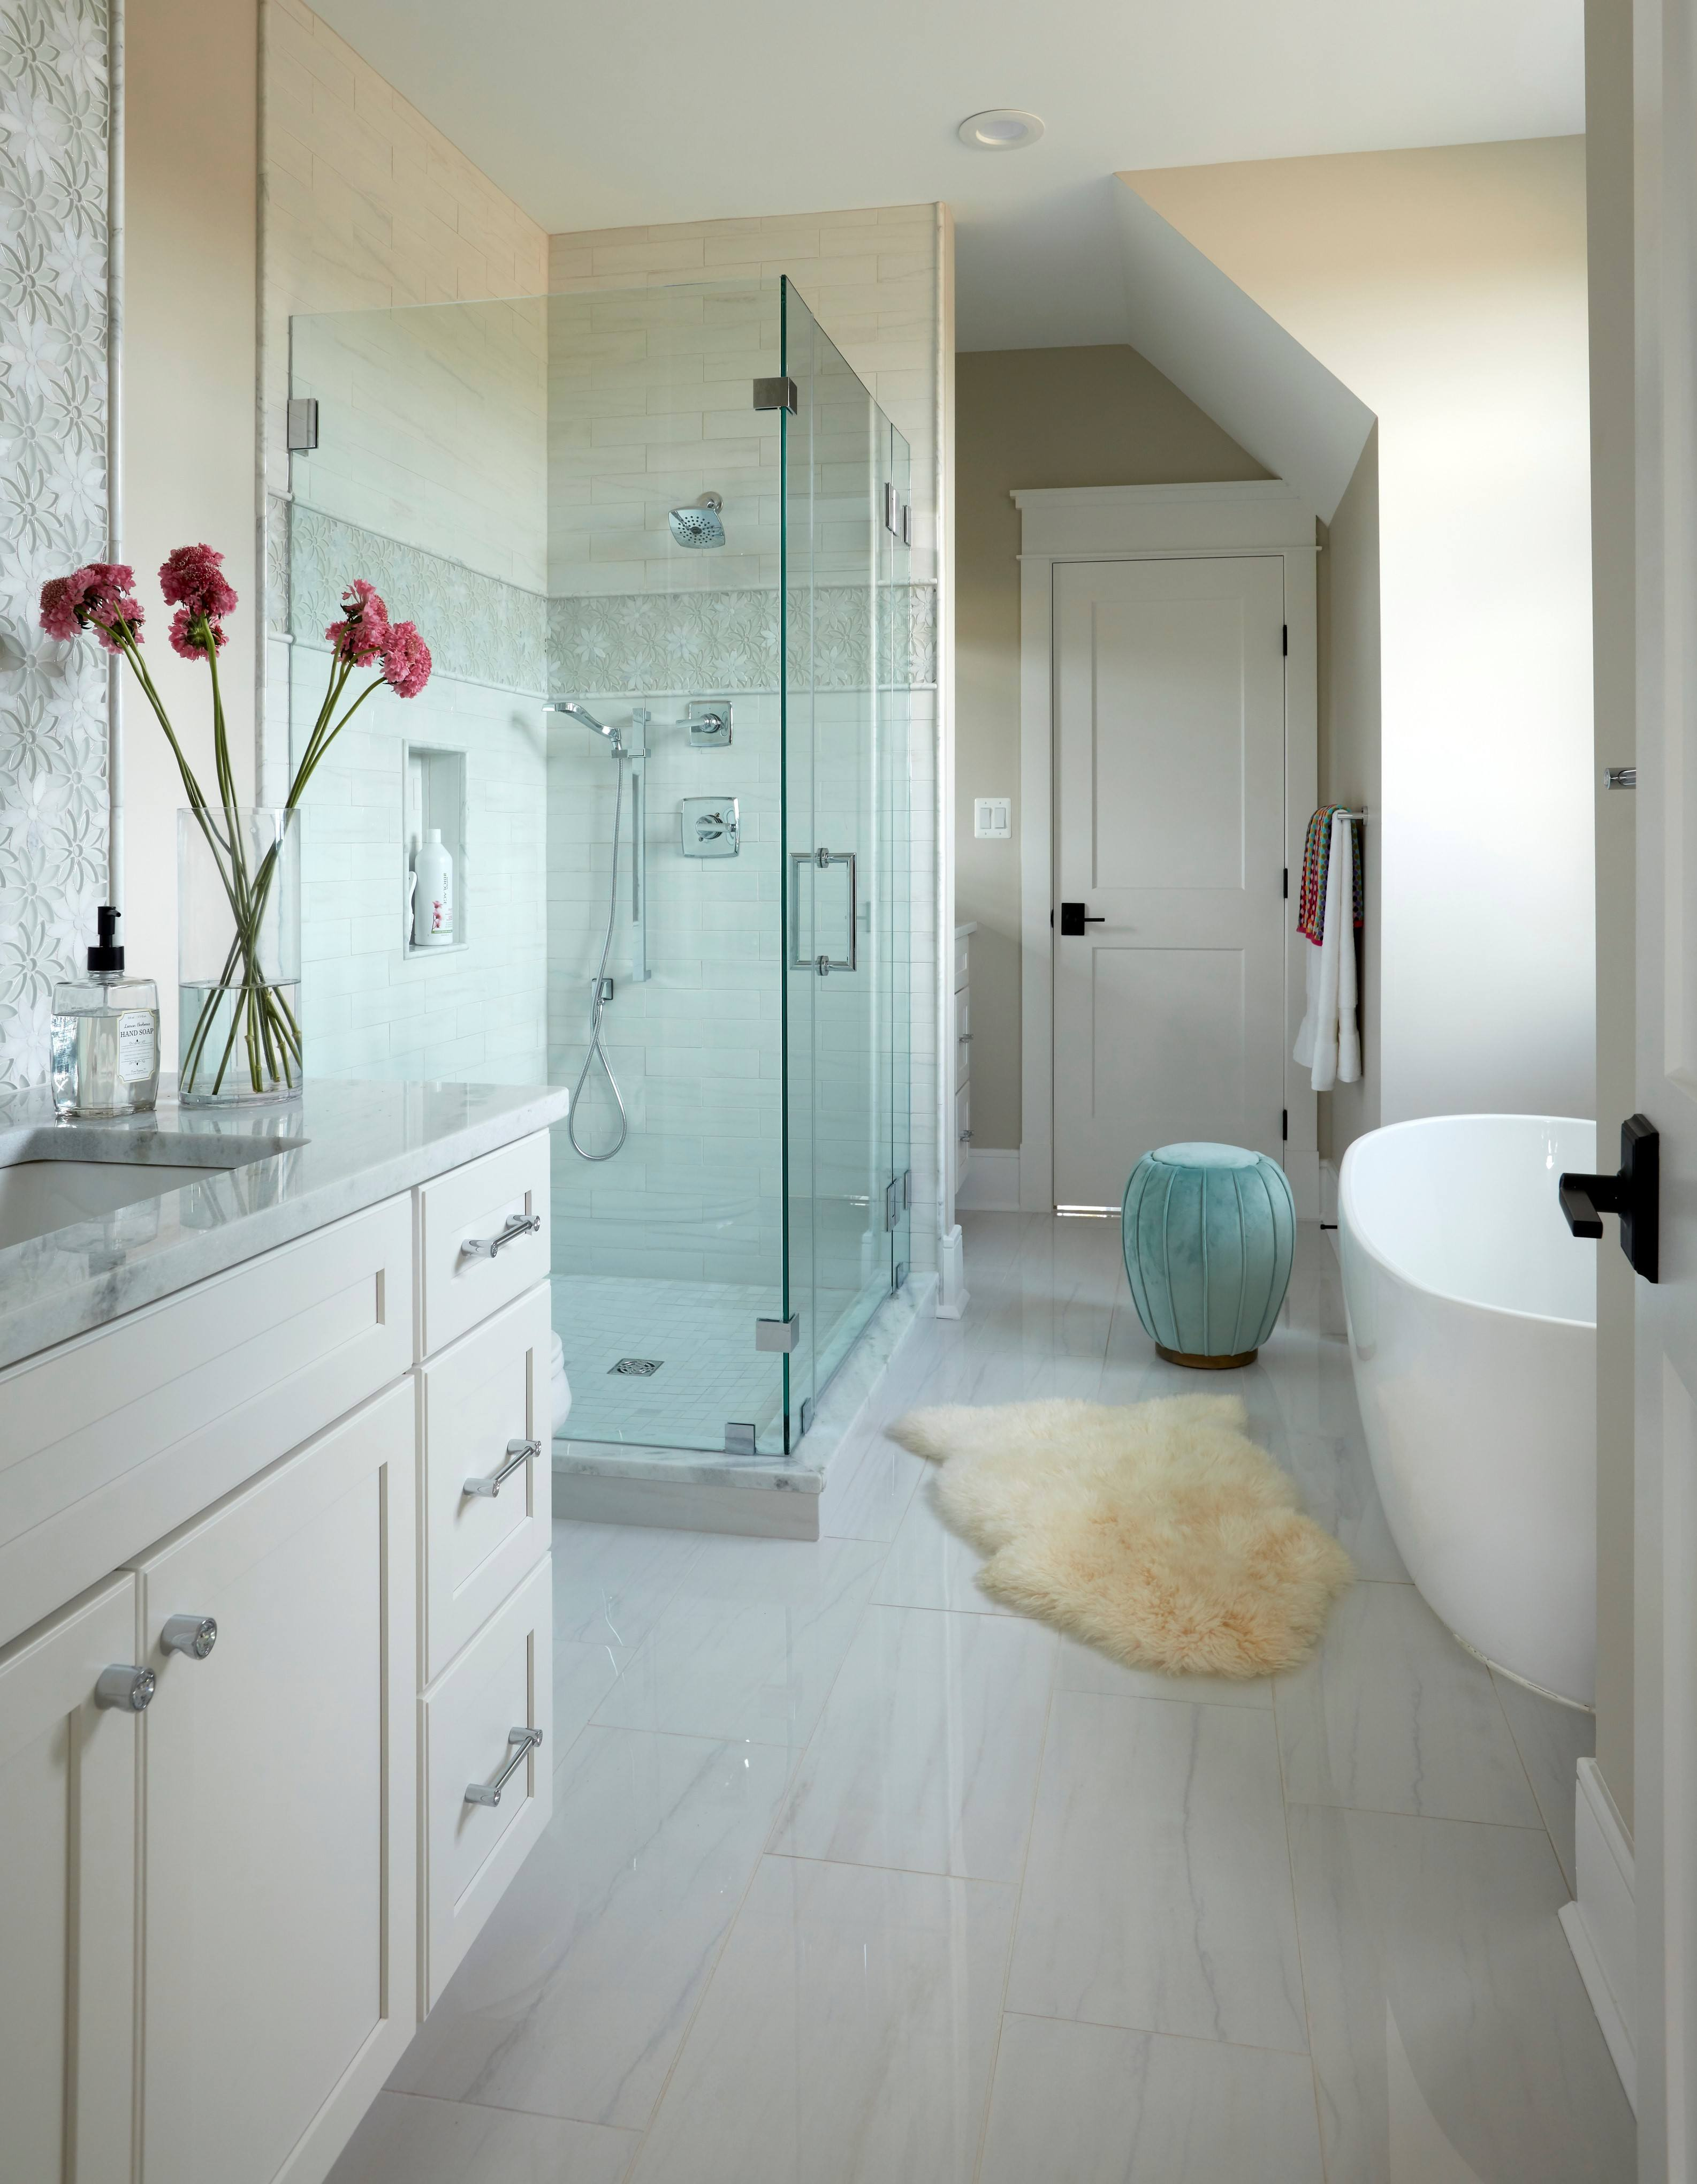 Dual vanities bathroom with shower and soaking tub